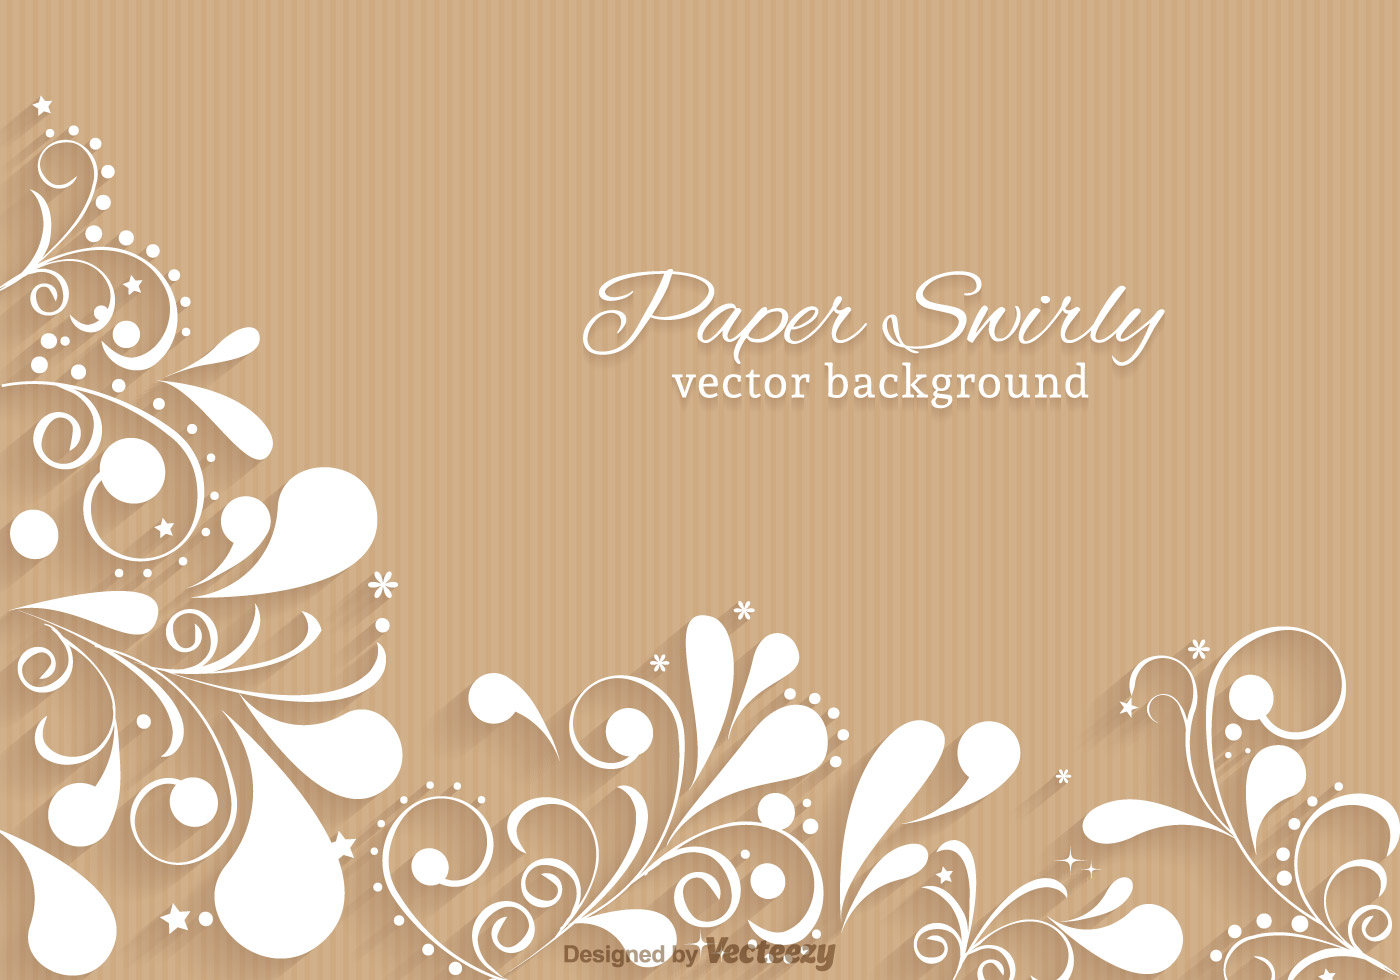 Vector Ornamental Dividers together with Stock Vector Abstract Blue And Orange Background With Wave Brochure Design Or Flyer further Vintage Greeting Cards East Style Floral Motifs Light Gold Background Persian Template Design Wedding together with Px Colourbox further Elegant Template Certificate Diploma Decoration Lace Pattern Ribbon Wax Seal Laurel Wreath Place Text. on gold swirl border